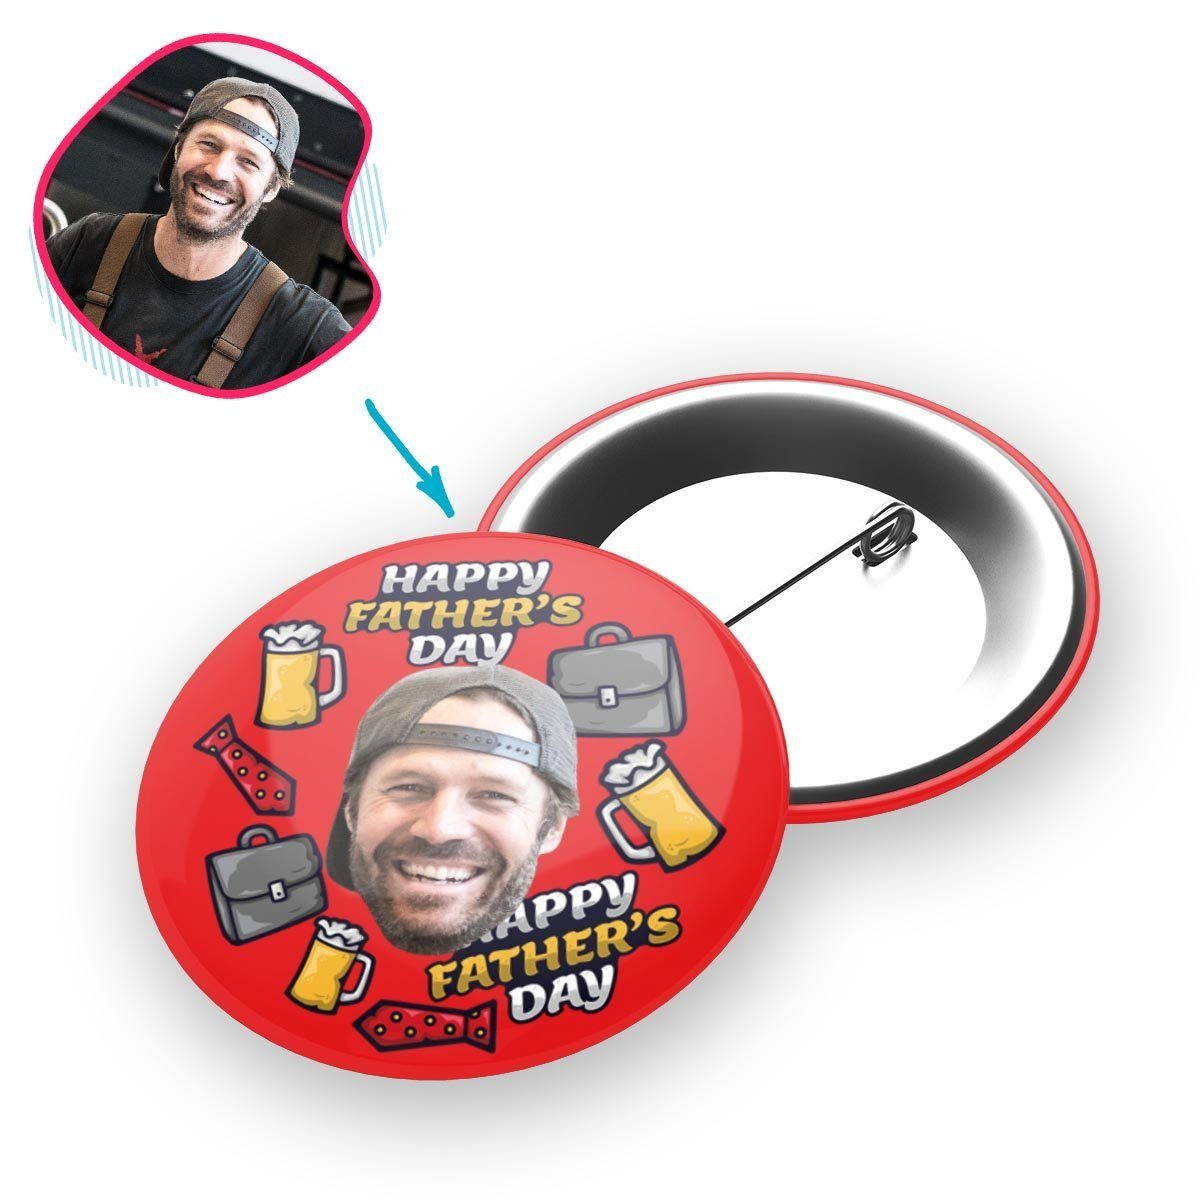 Red Fathers Day personalized pin with photo of face printed on it